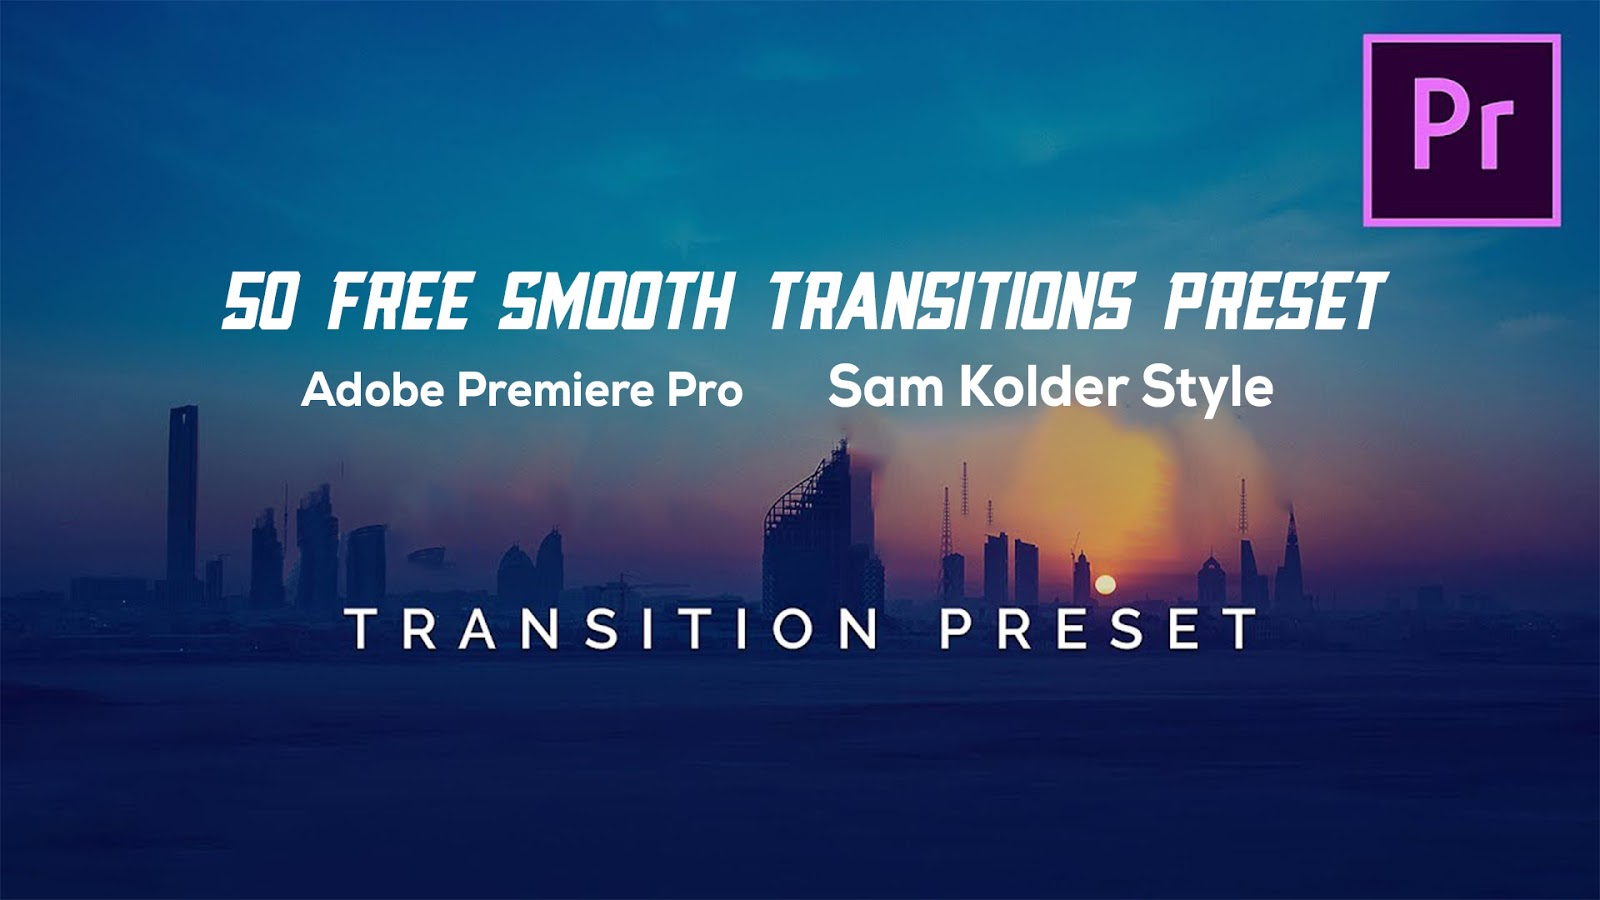 50 Free Smooth Transitions Preset for Adobe Premiere Pro - Sam Kolder Style